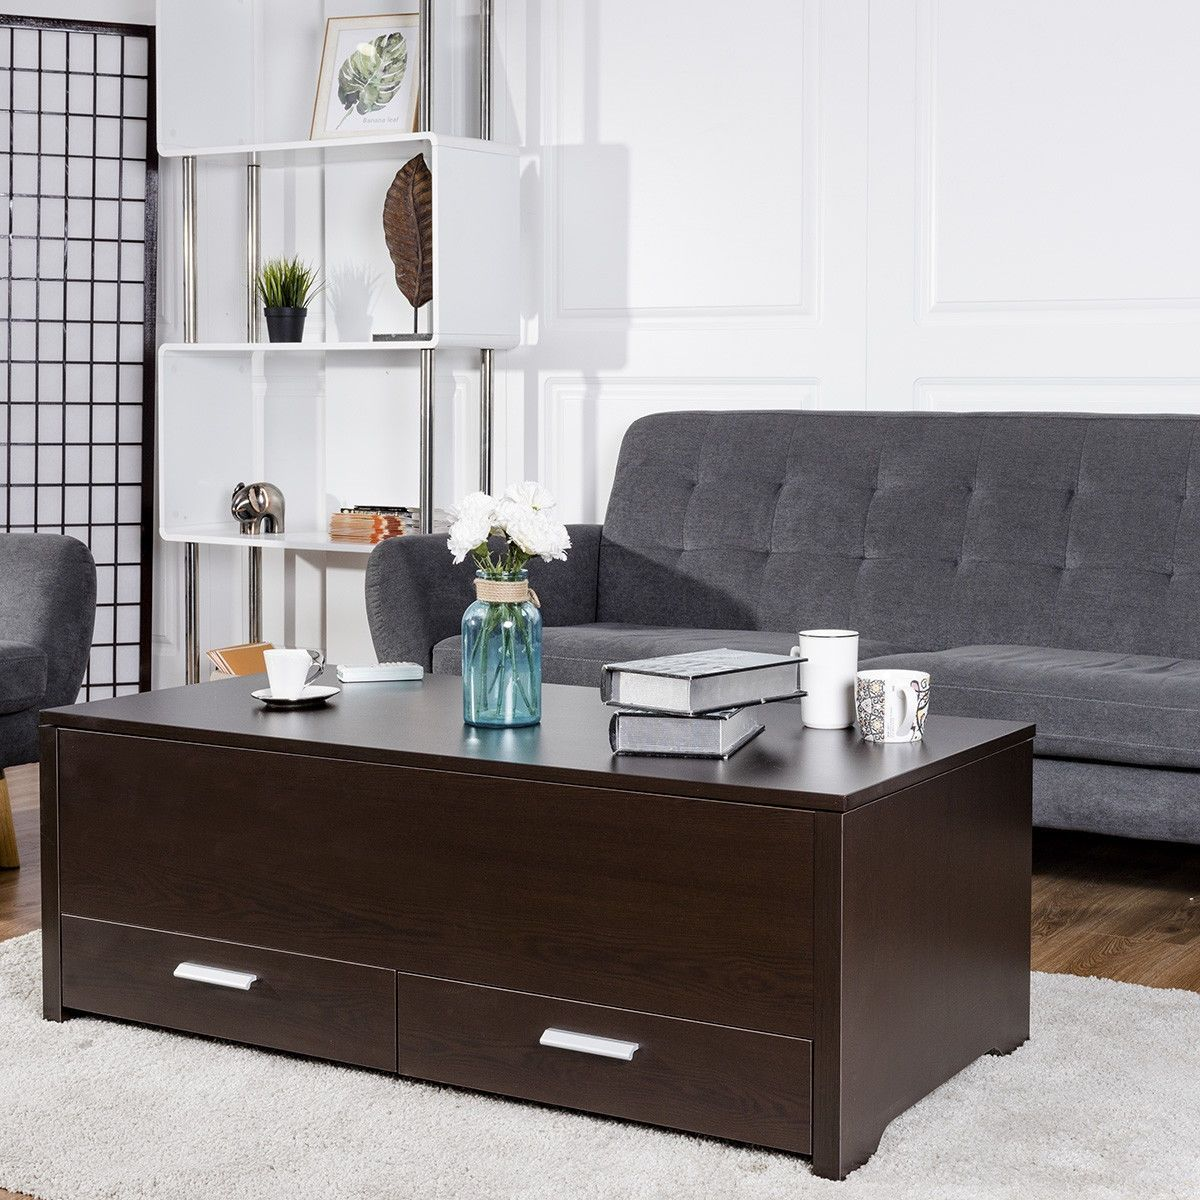 Sliding Top Trunk Coffee Table With Hidden Compartment 2 Drawers Coffee Table Coffee Tables For Sale Coffee Table Trunk [ 1200 x 1200 Pixel ]